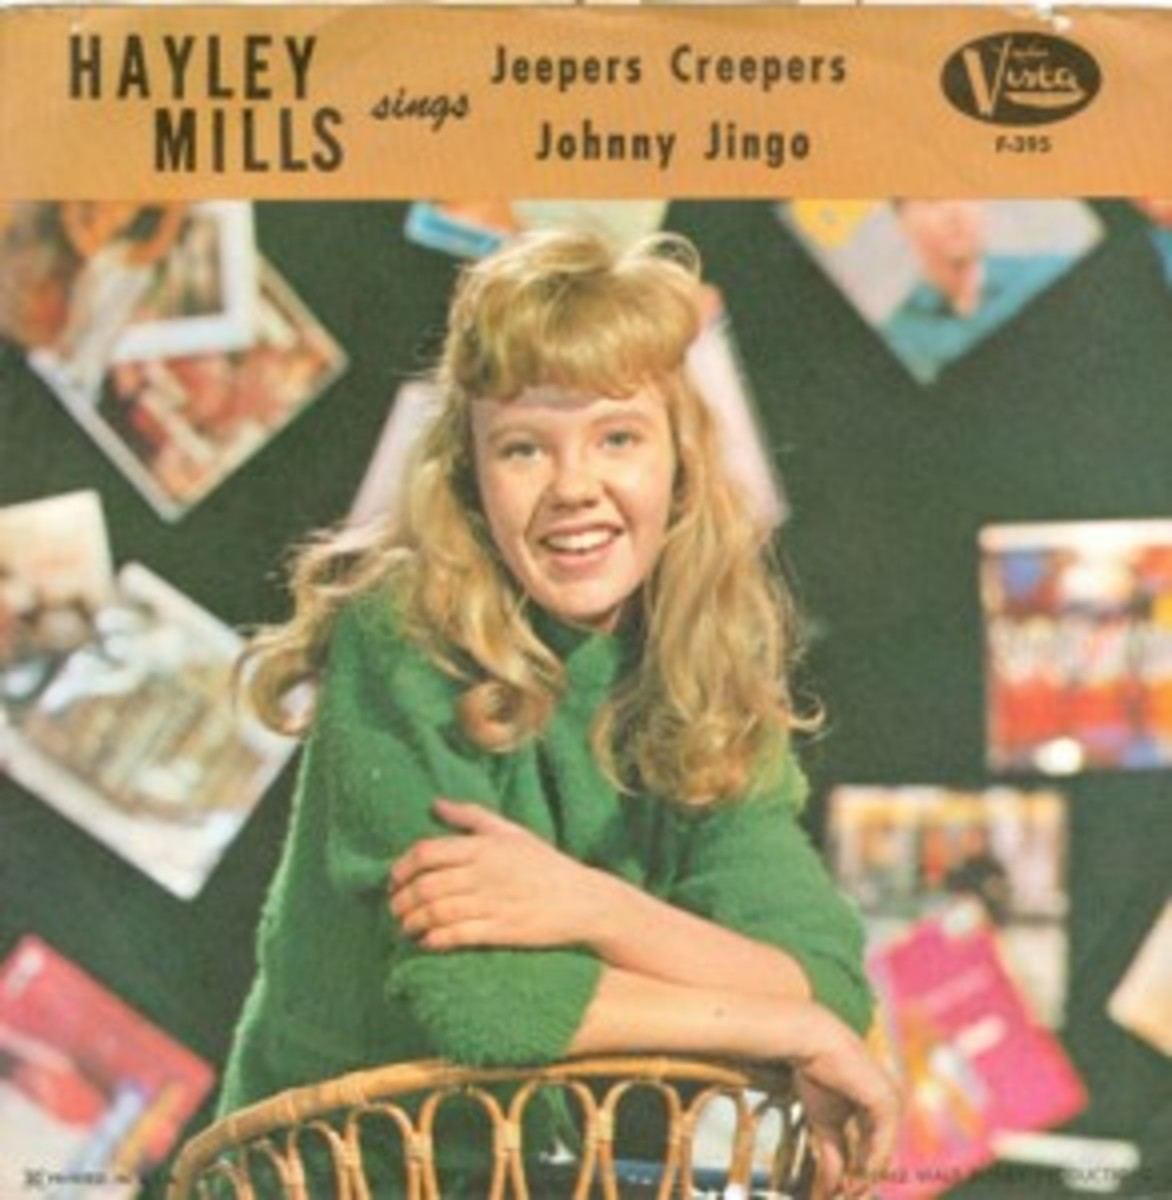 Hayley Mills Jeepers Creepers picture sleeve